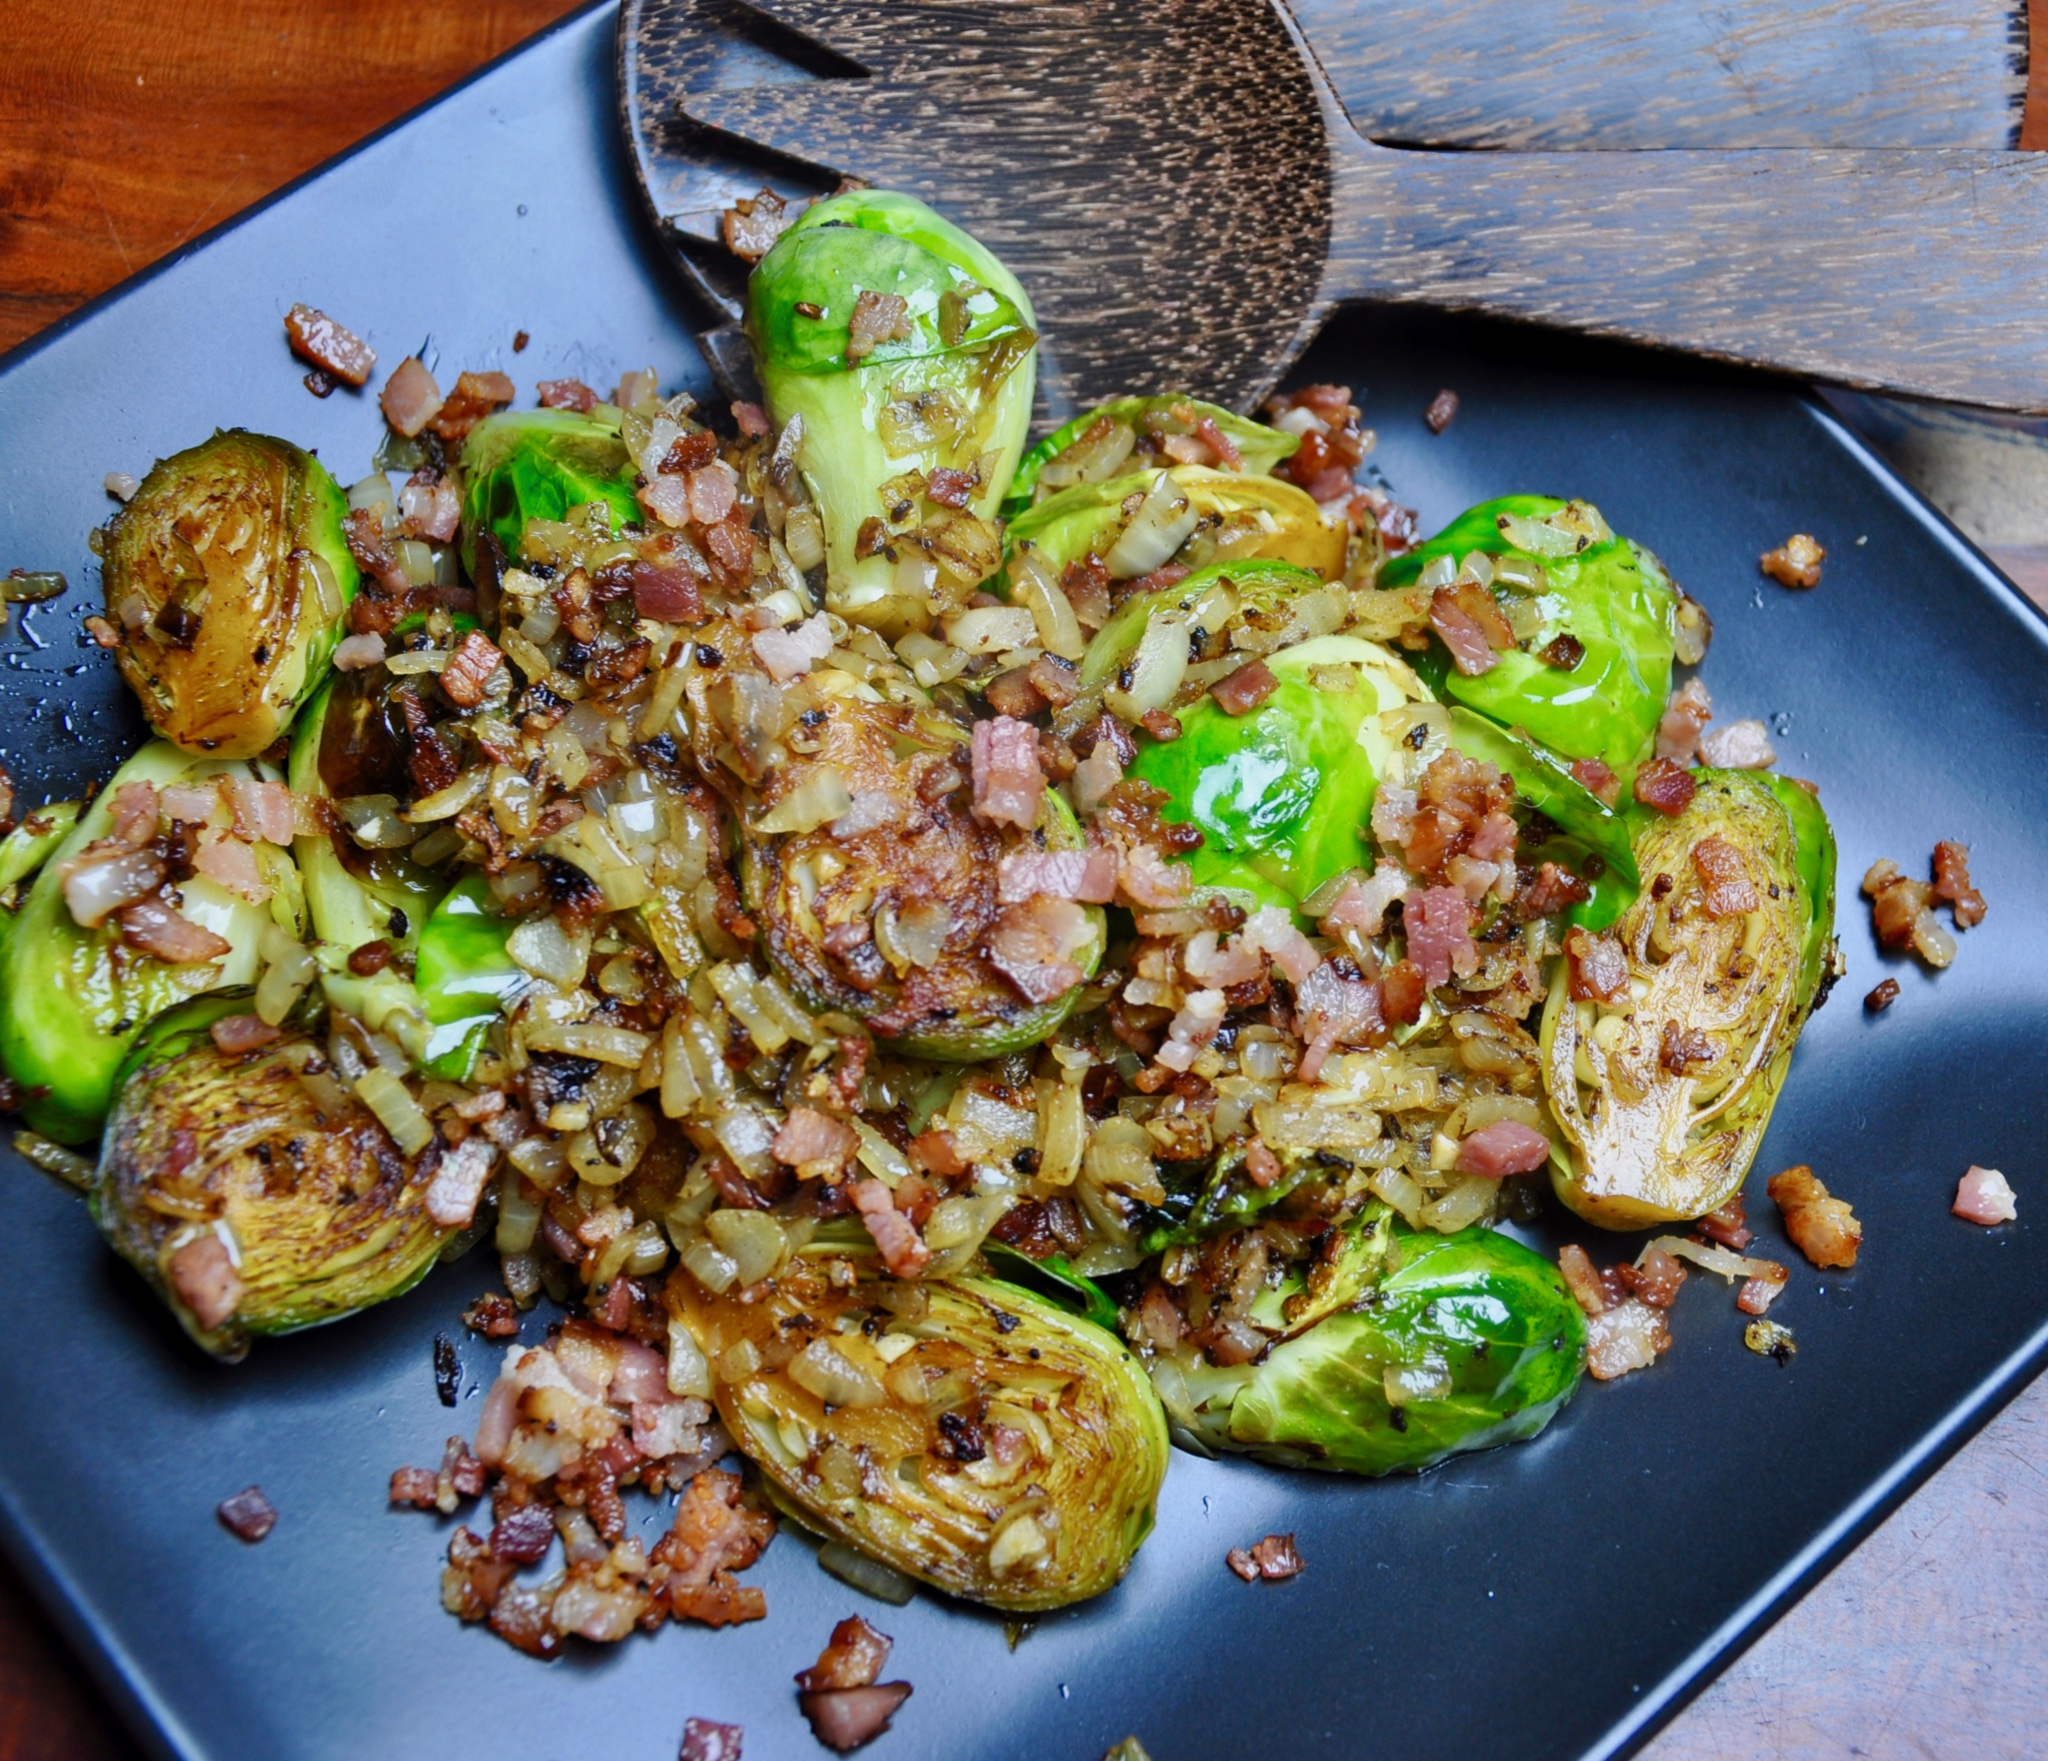 brussel sprouts sauteed with bacon, onion and garlic served on a dark b;i.e. plate with timber fork and spoon servers